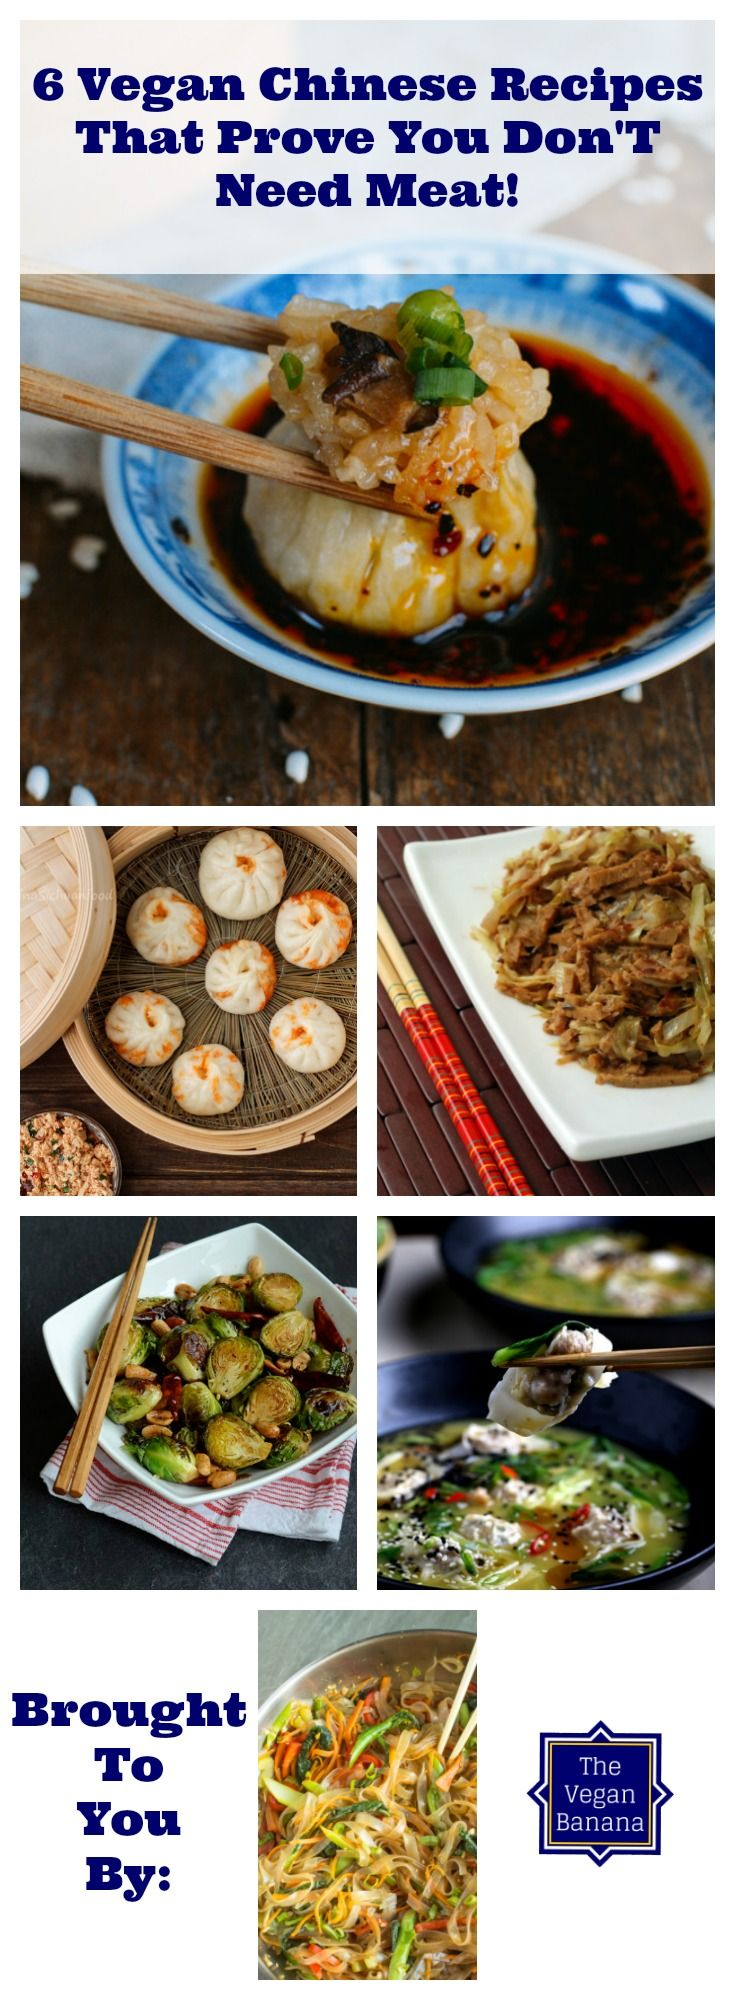 Vegan Chinese recipes to wow anyone and everyone! These 6 vegan Chinese recipes prove that you don't need meat to be yummy.